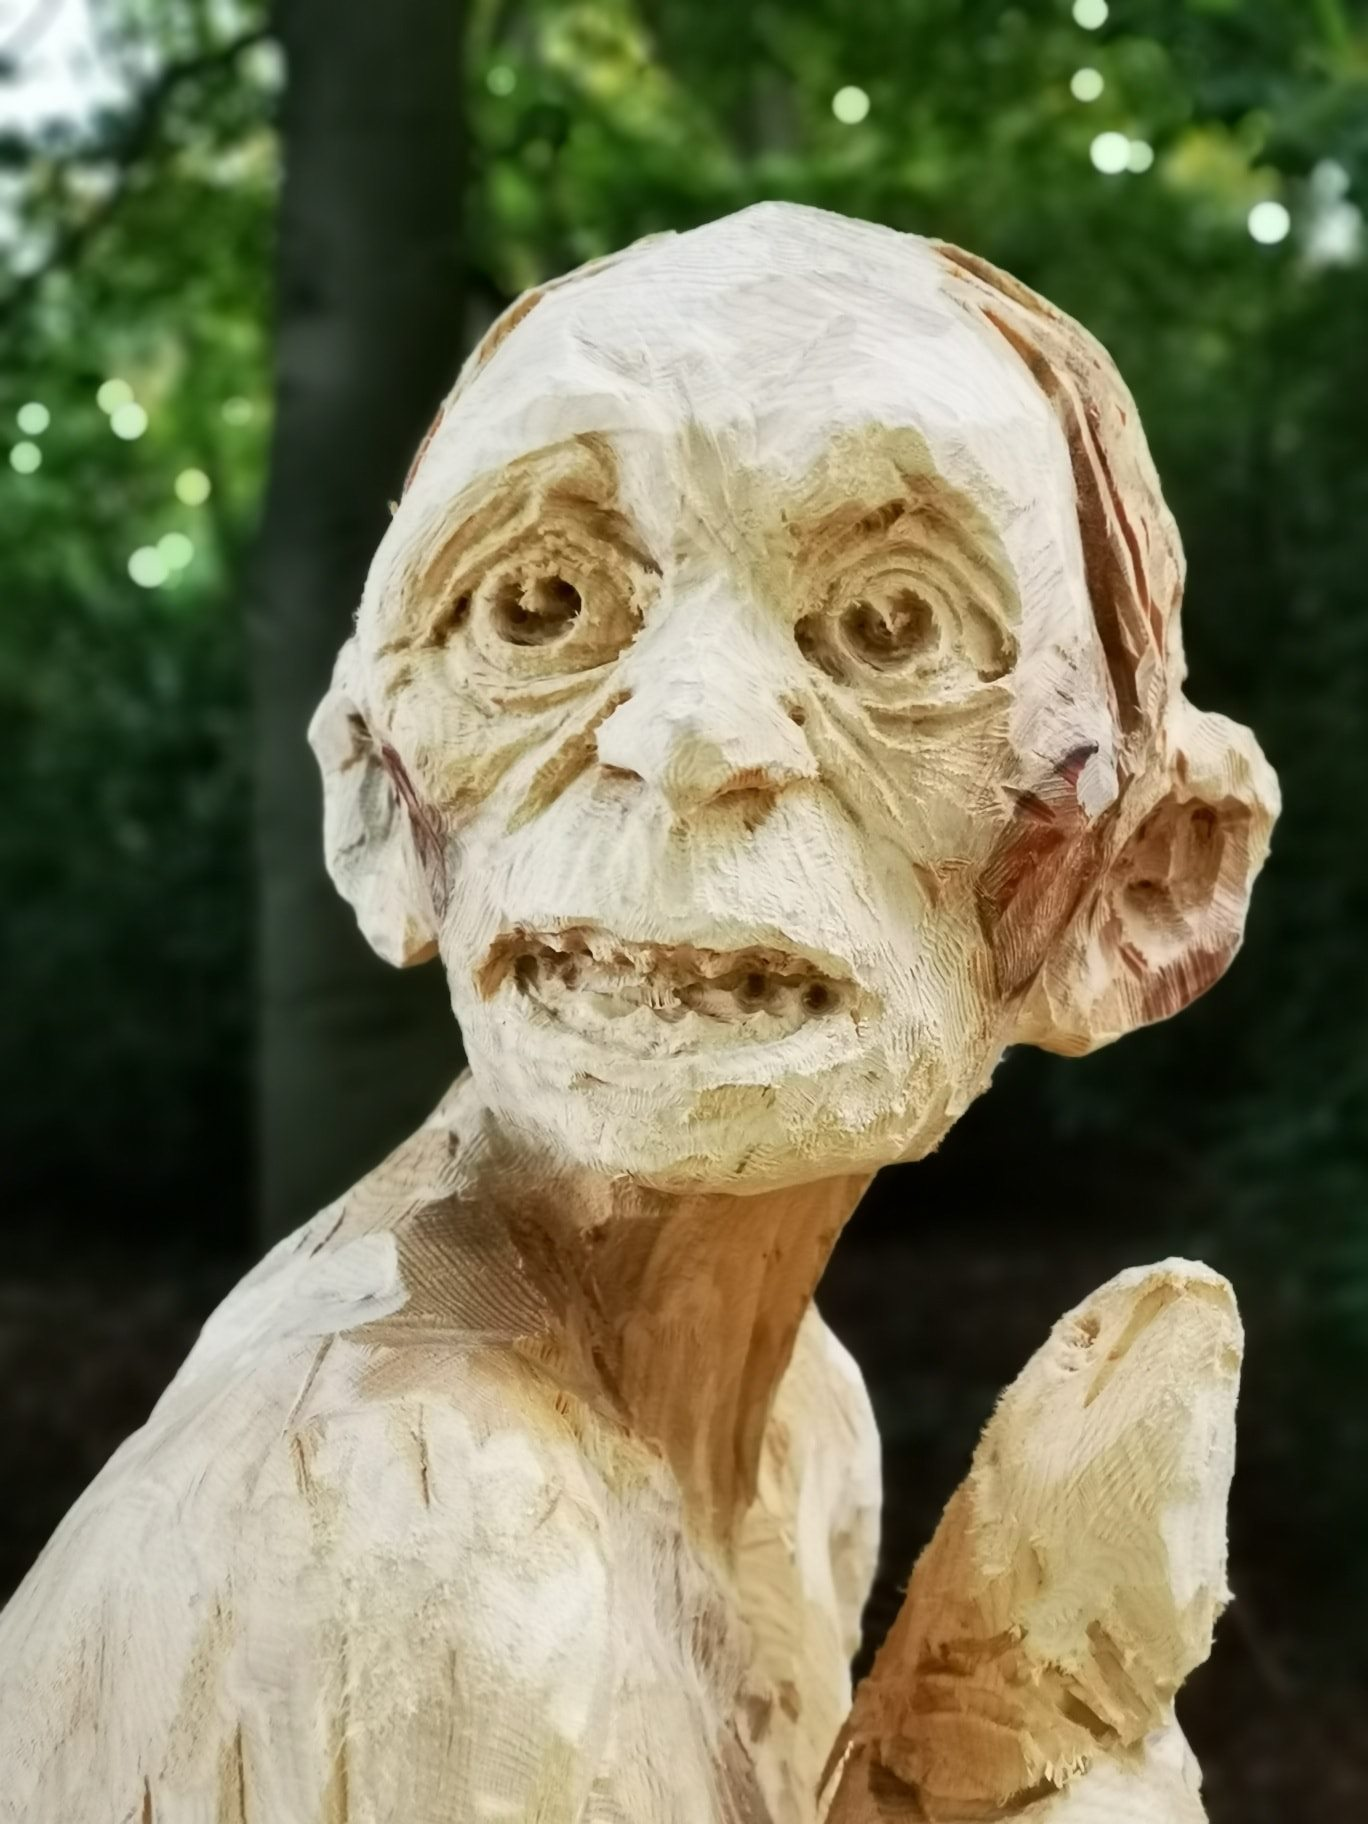 close up of the face of the gollum sculpture created by chainsaw artist simon o'rourke